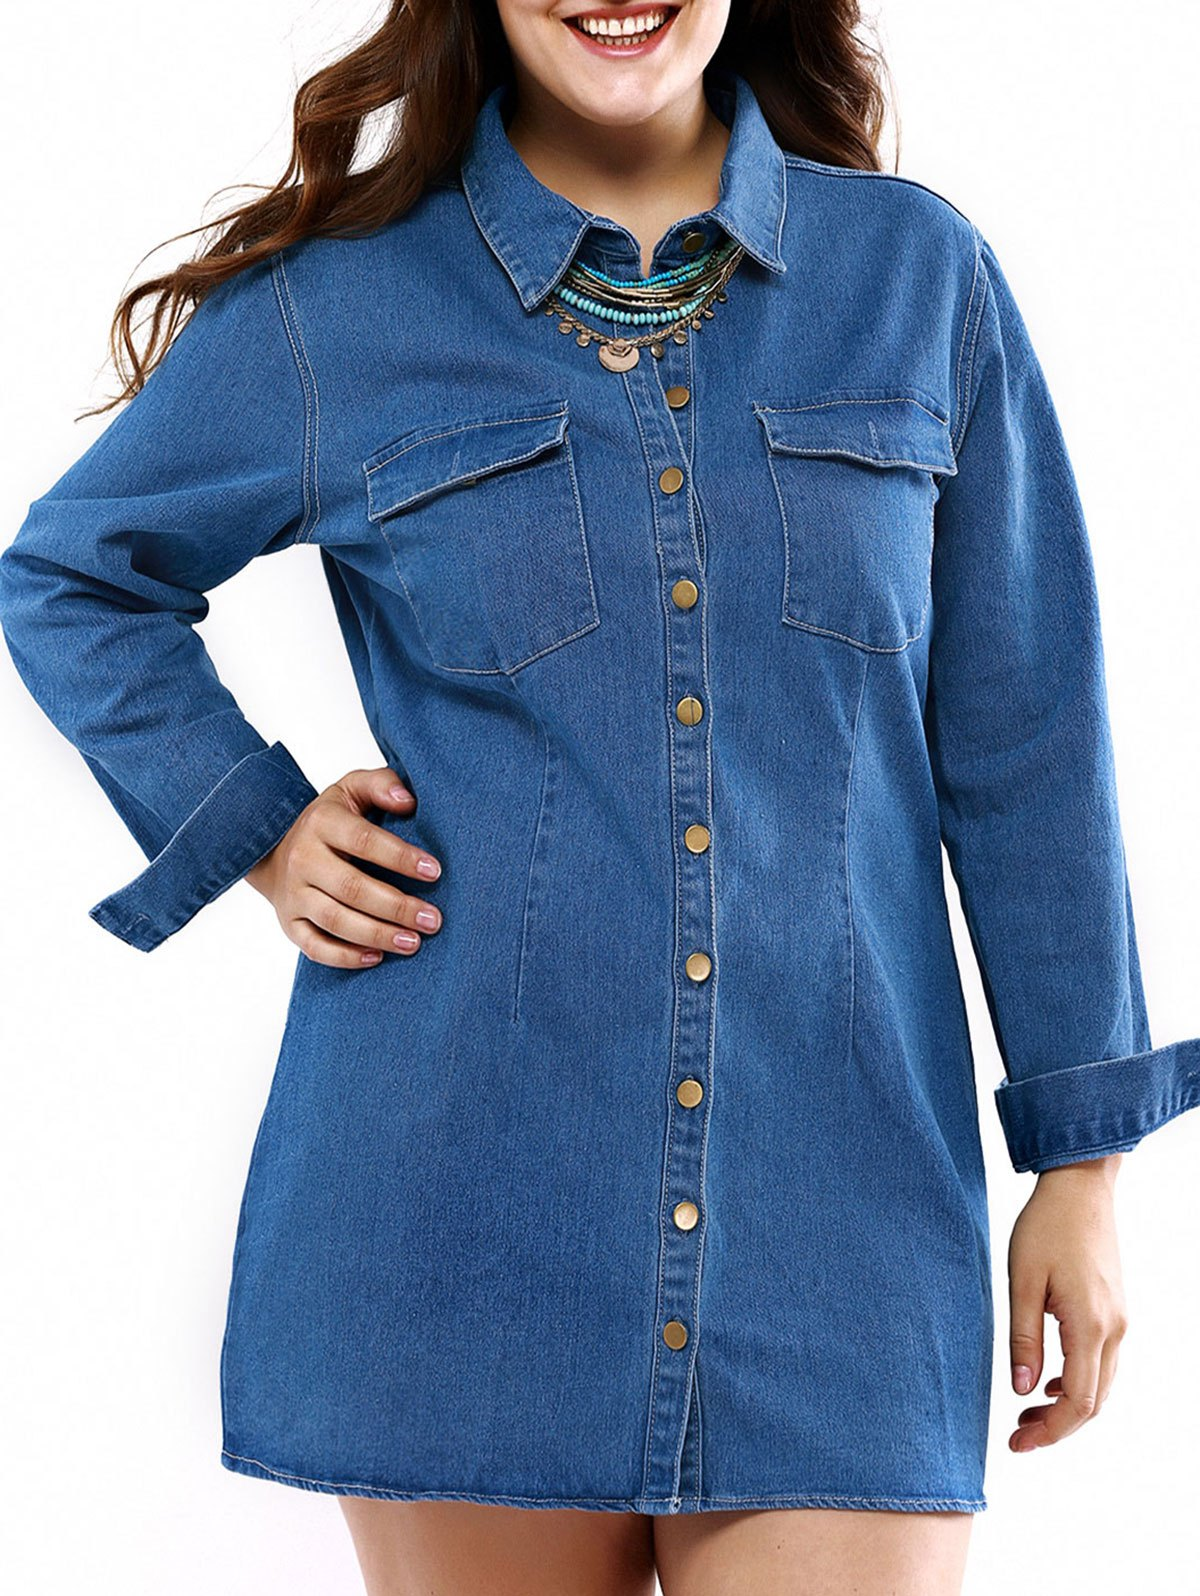 Plus Size Casual Mini Denim Shirt Dress